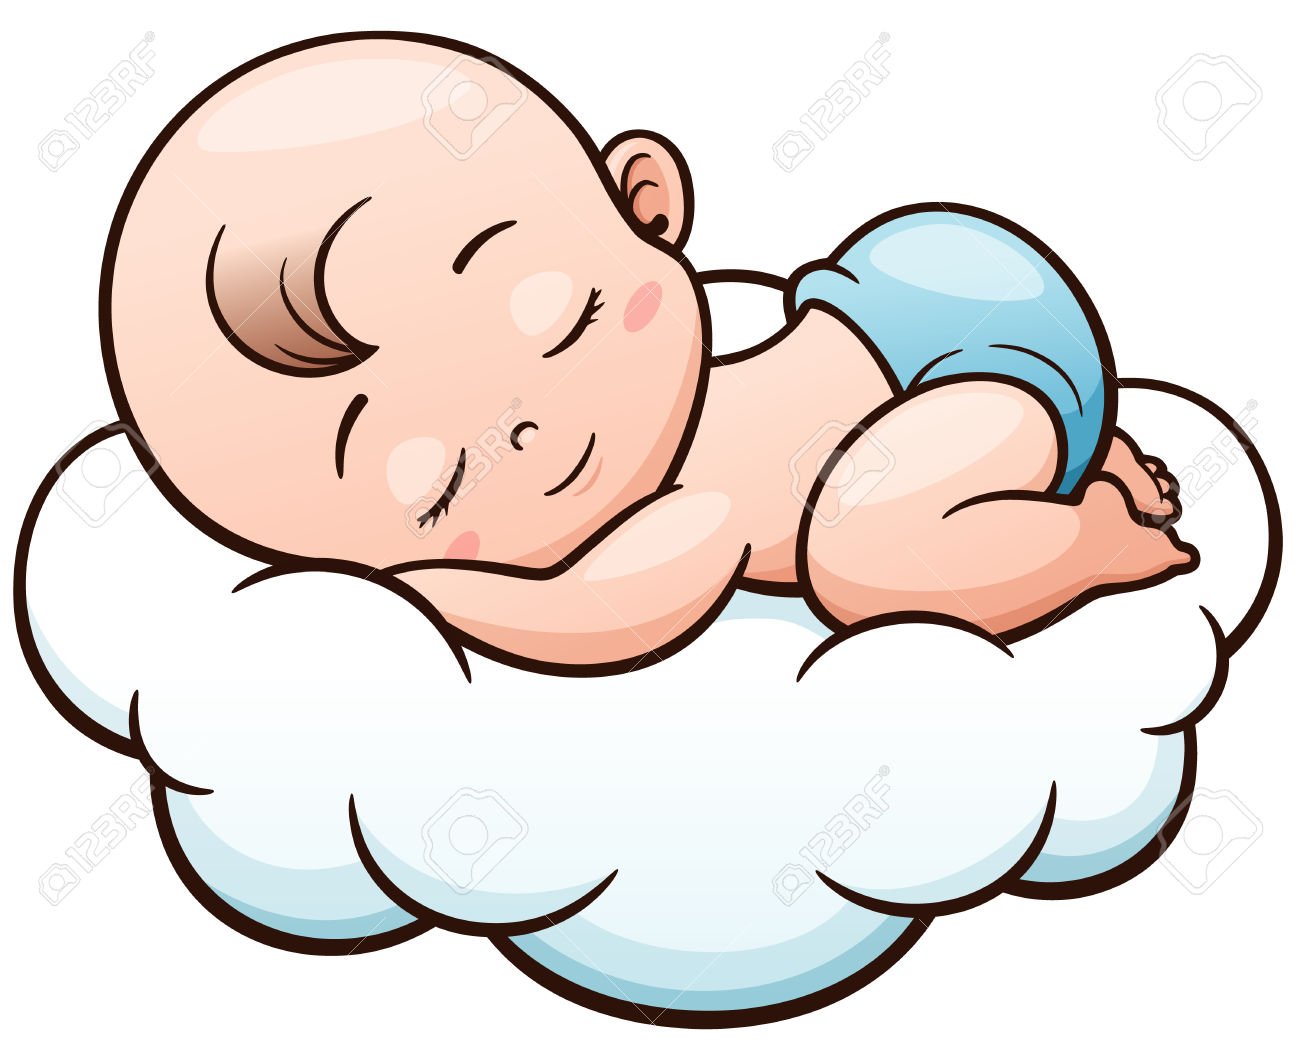 Baby Sleeping Clipart | Free download best Baby Sleeping ...